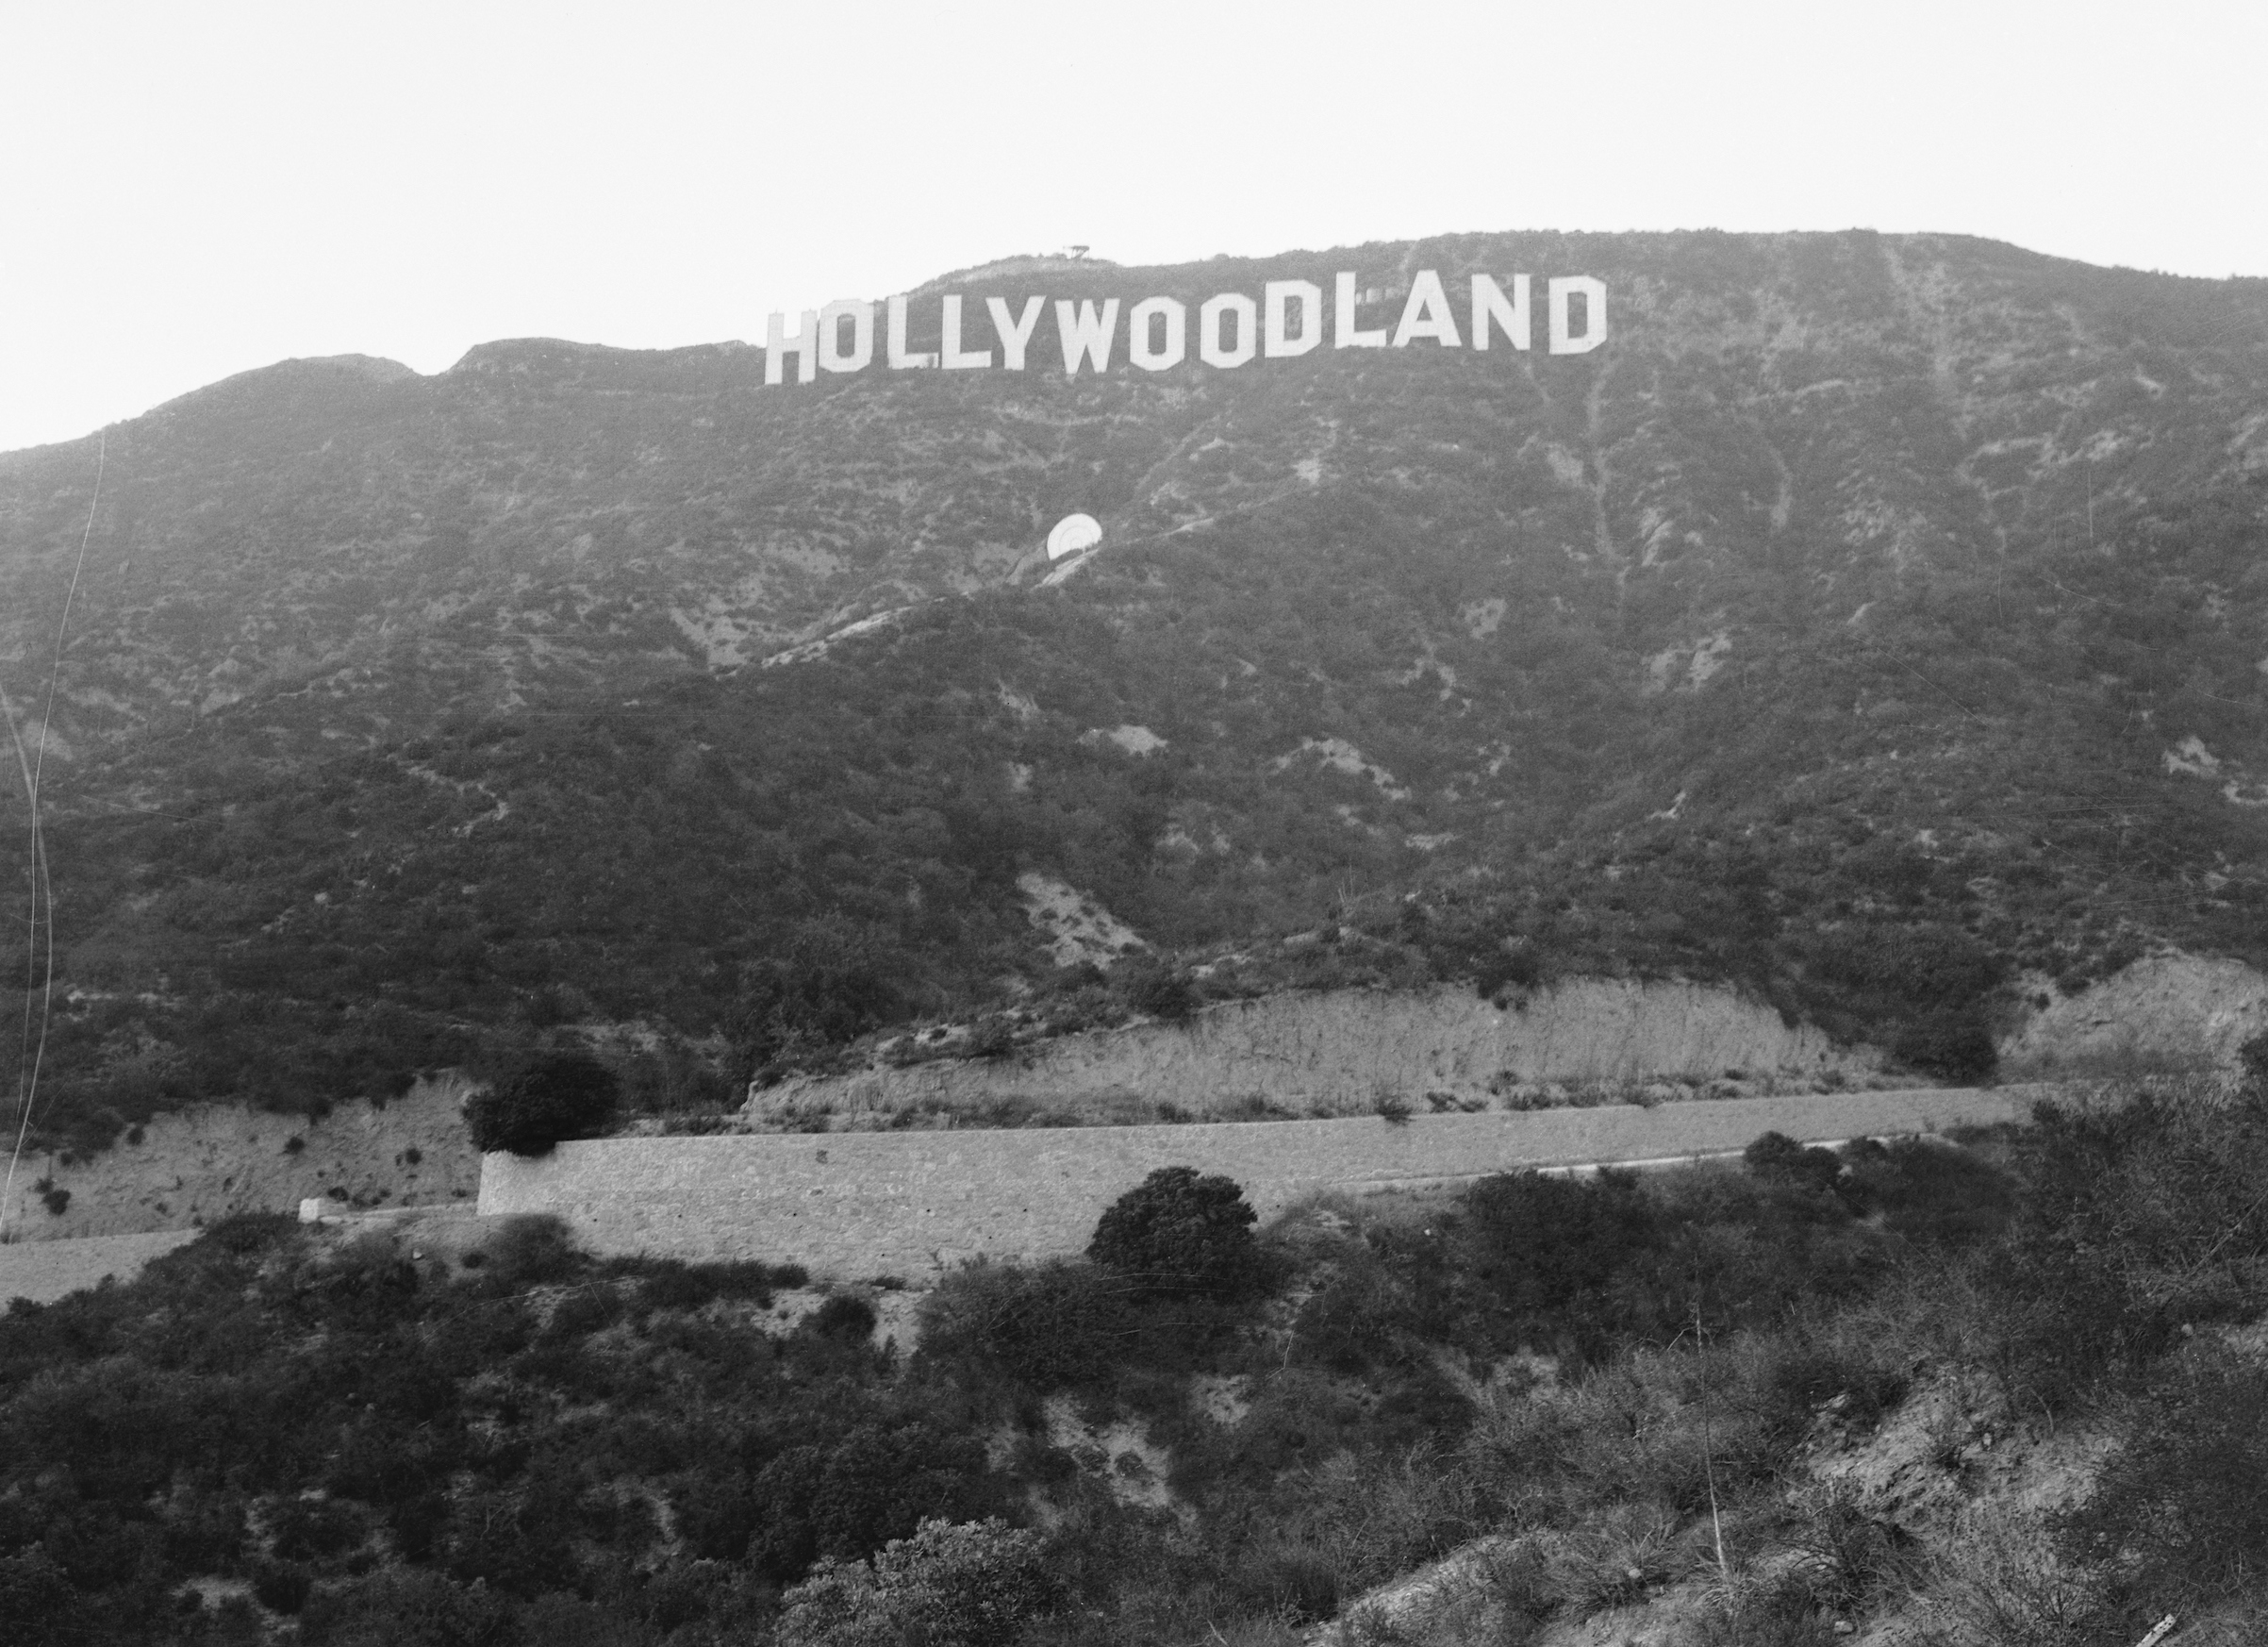 The sign overlooking Hollywood, Calif., in 1932